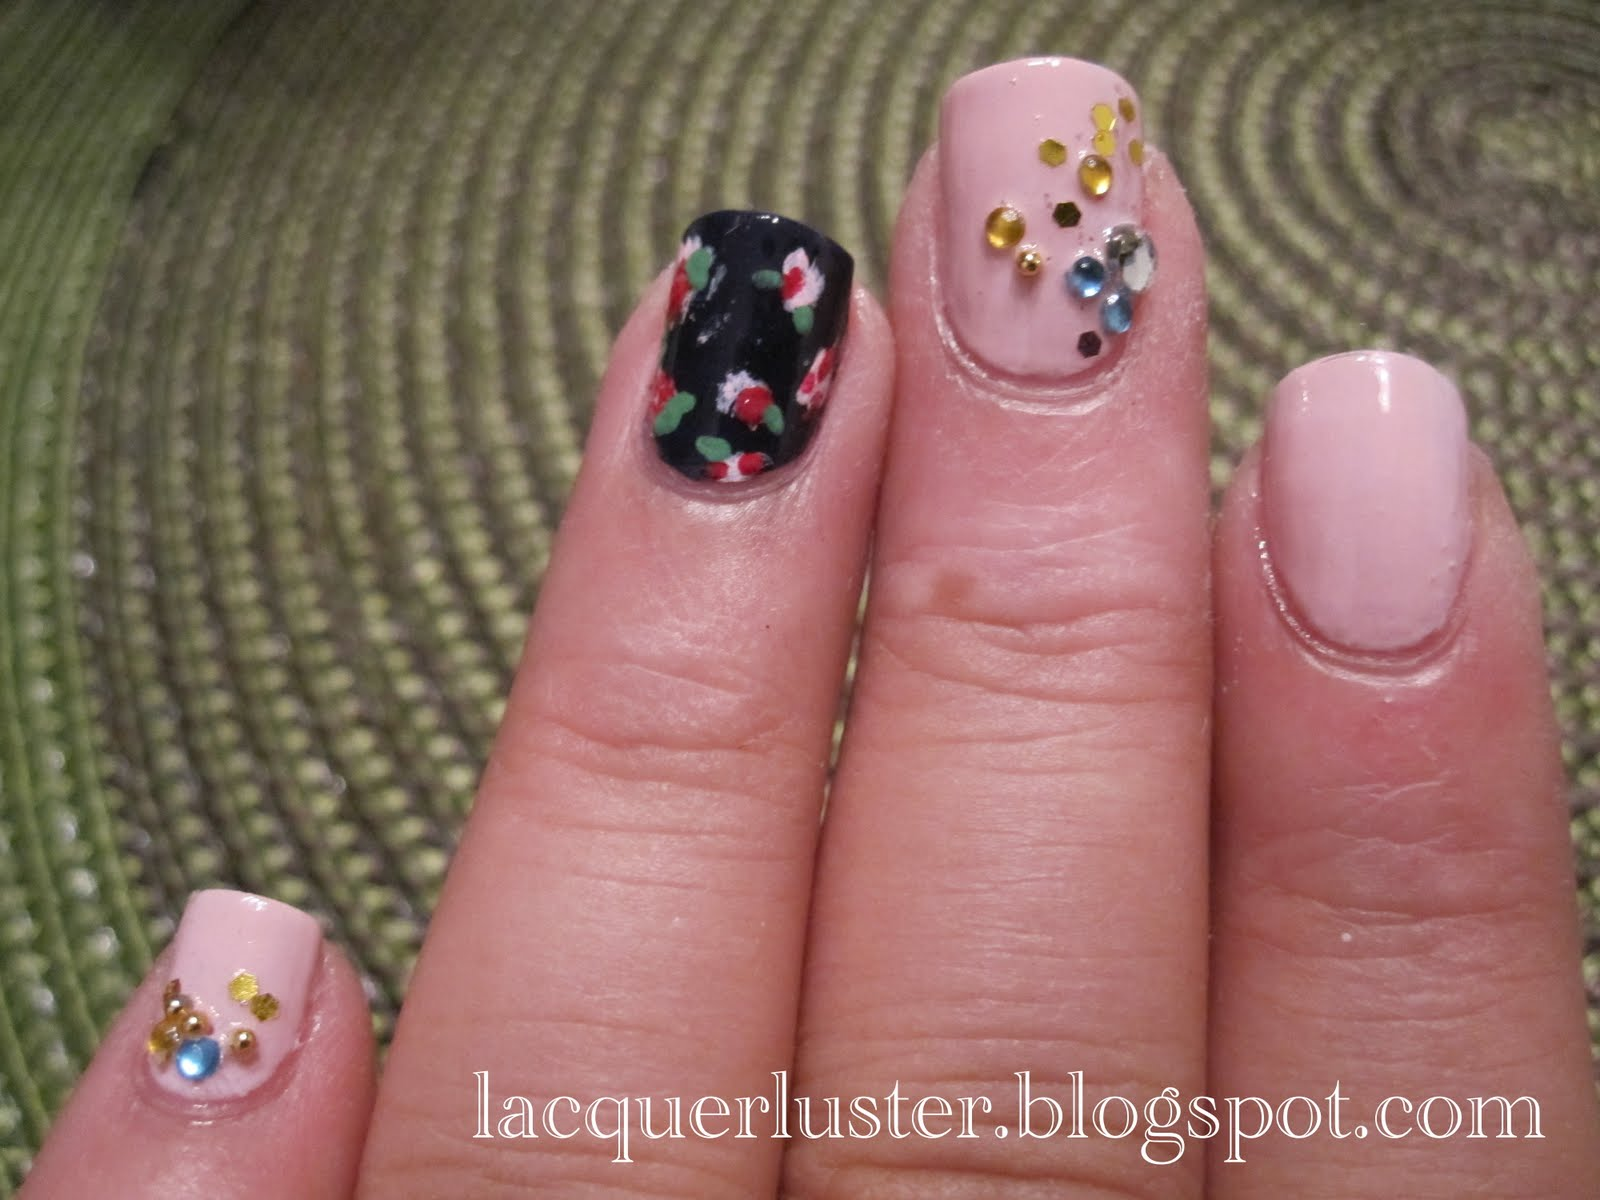 Lacquerluster: Pink Nails with Jewels and Floral Accent